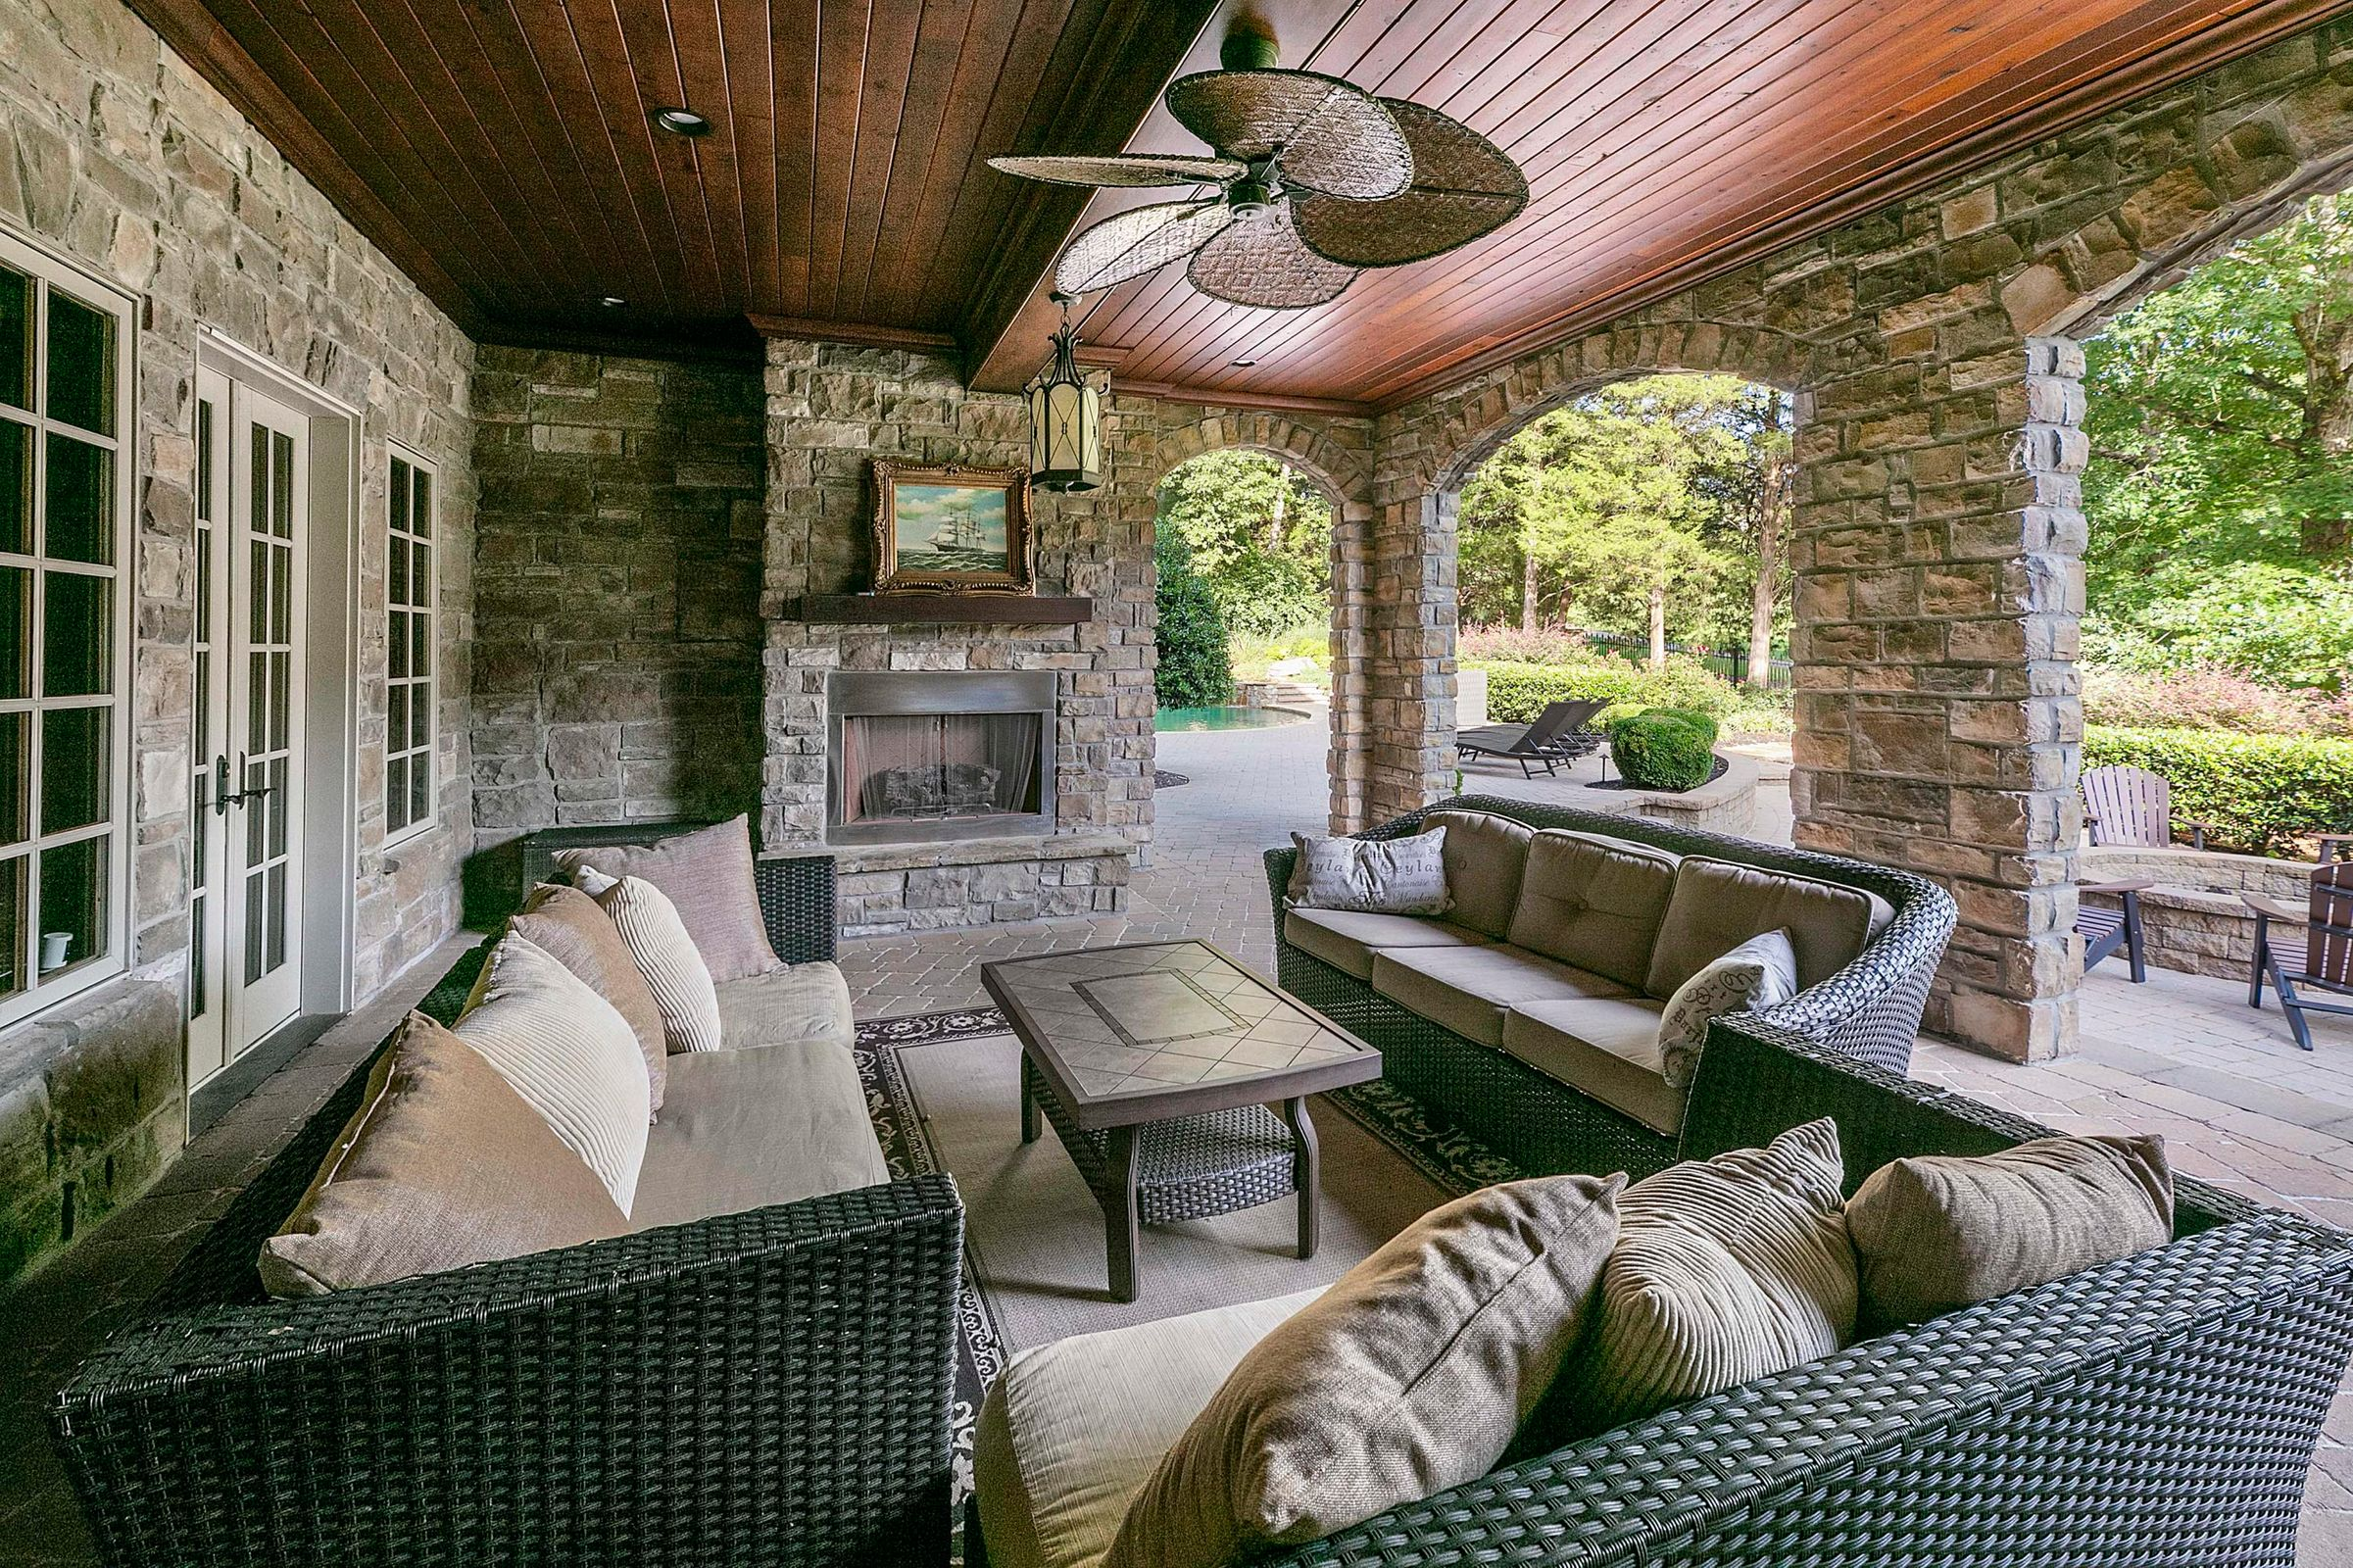 LL covered porch